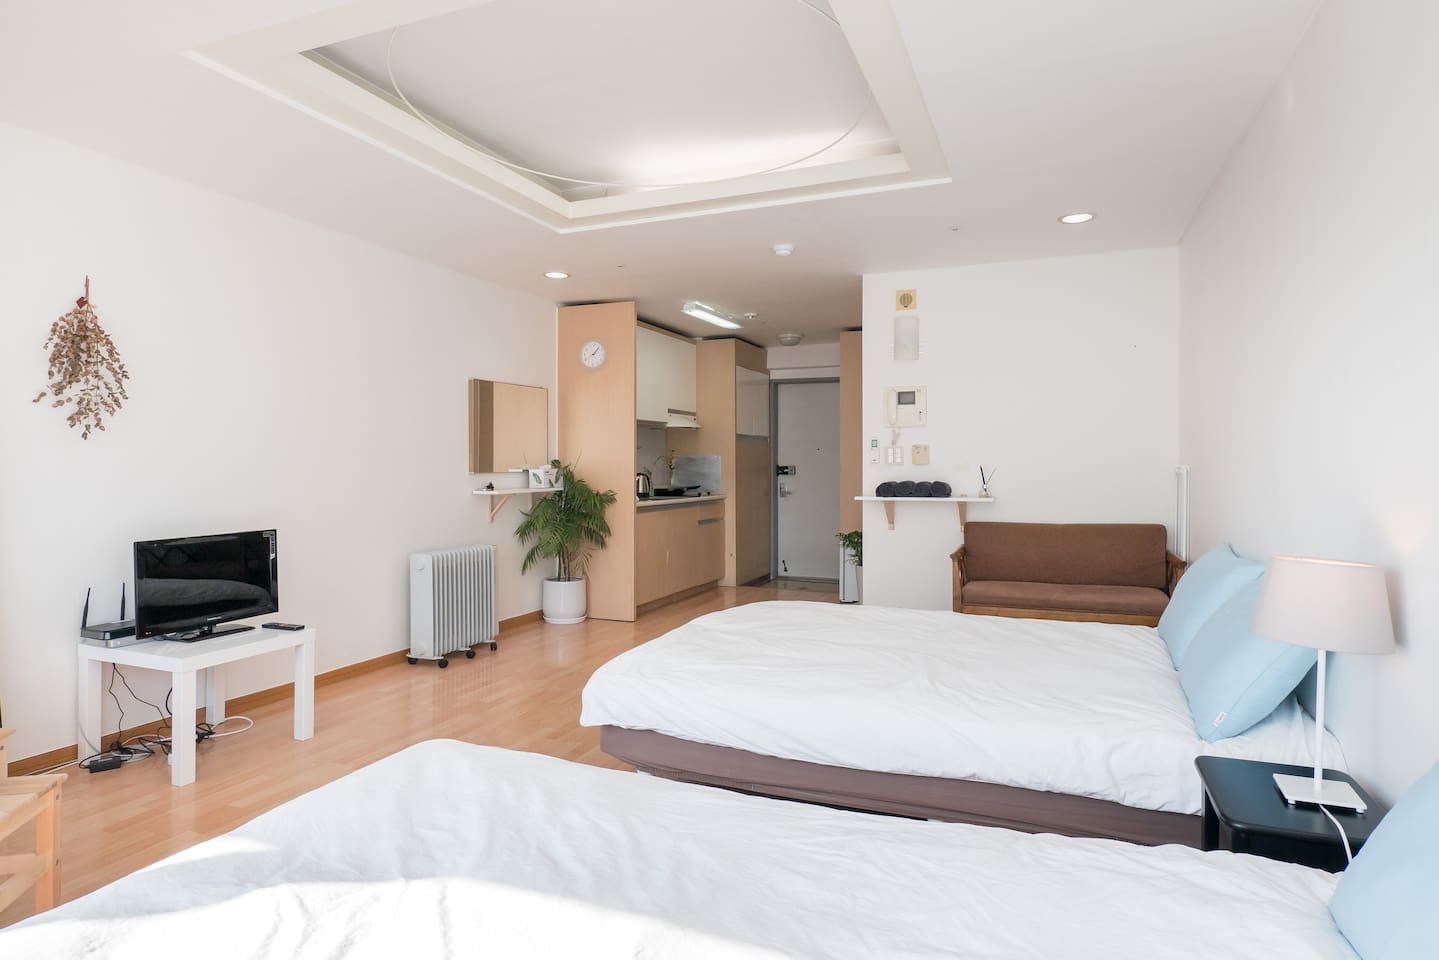 sec from hongdae stn cozy studio p apartments for rent in mapo gu seoul south korea: heater table aaad